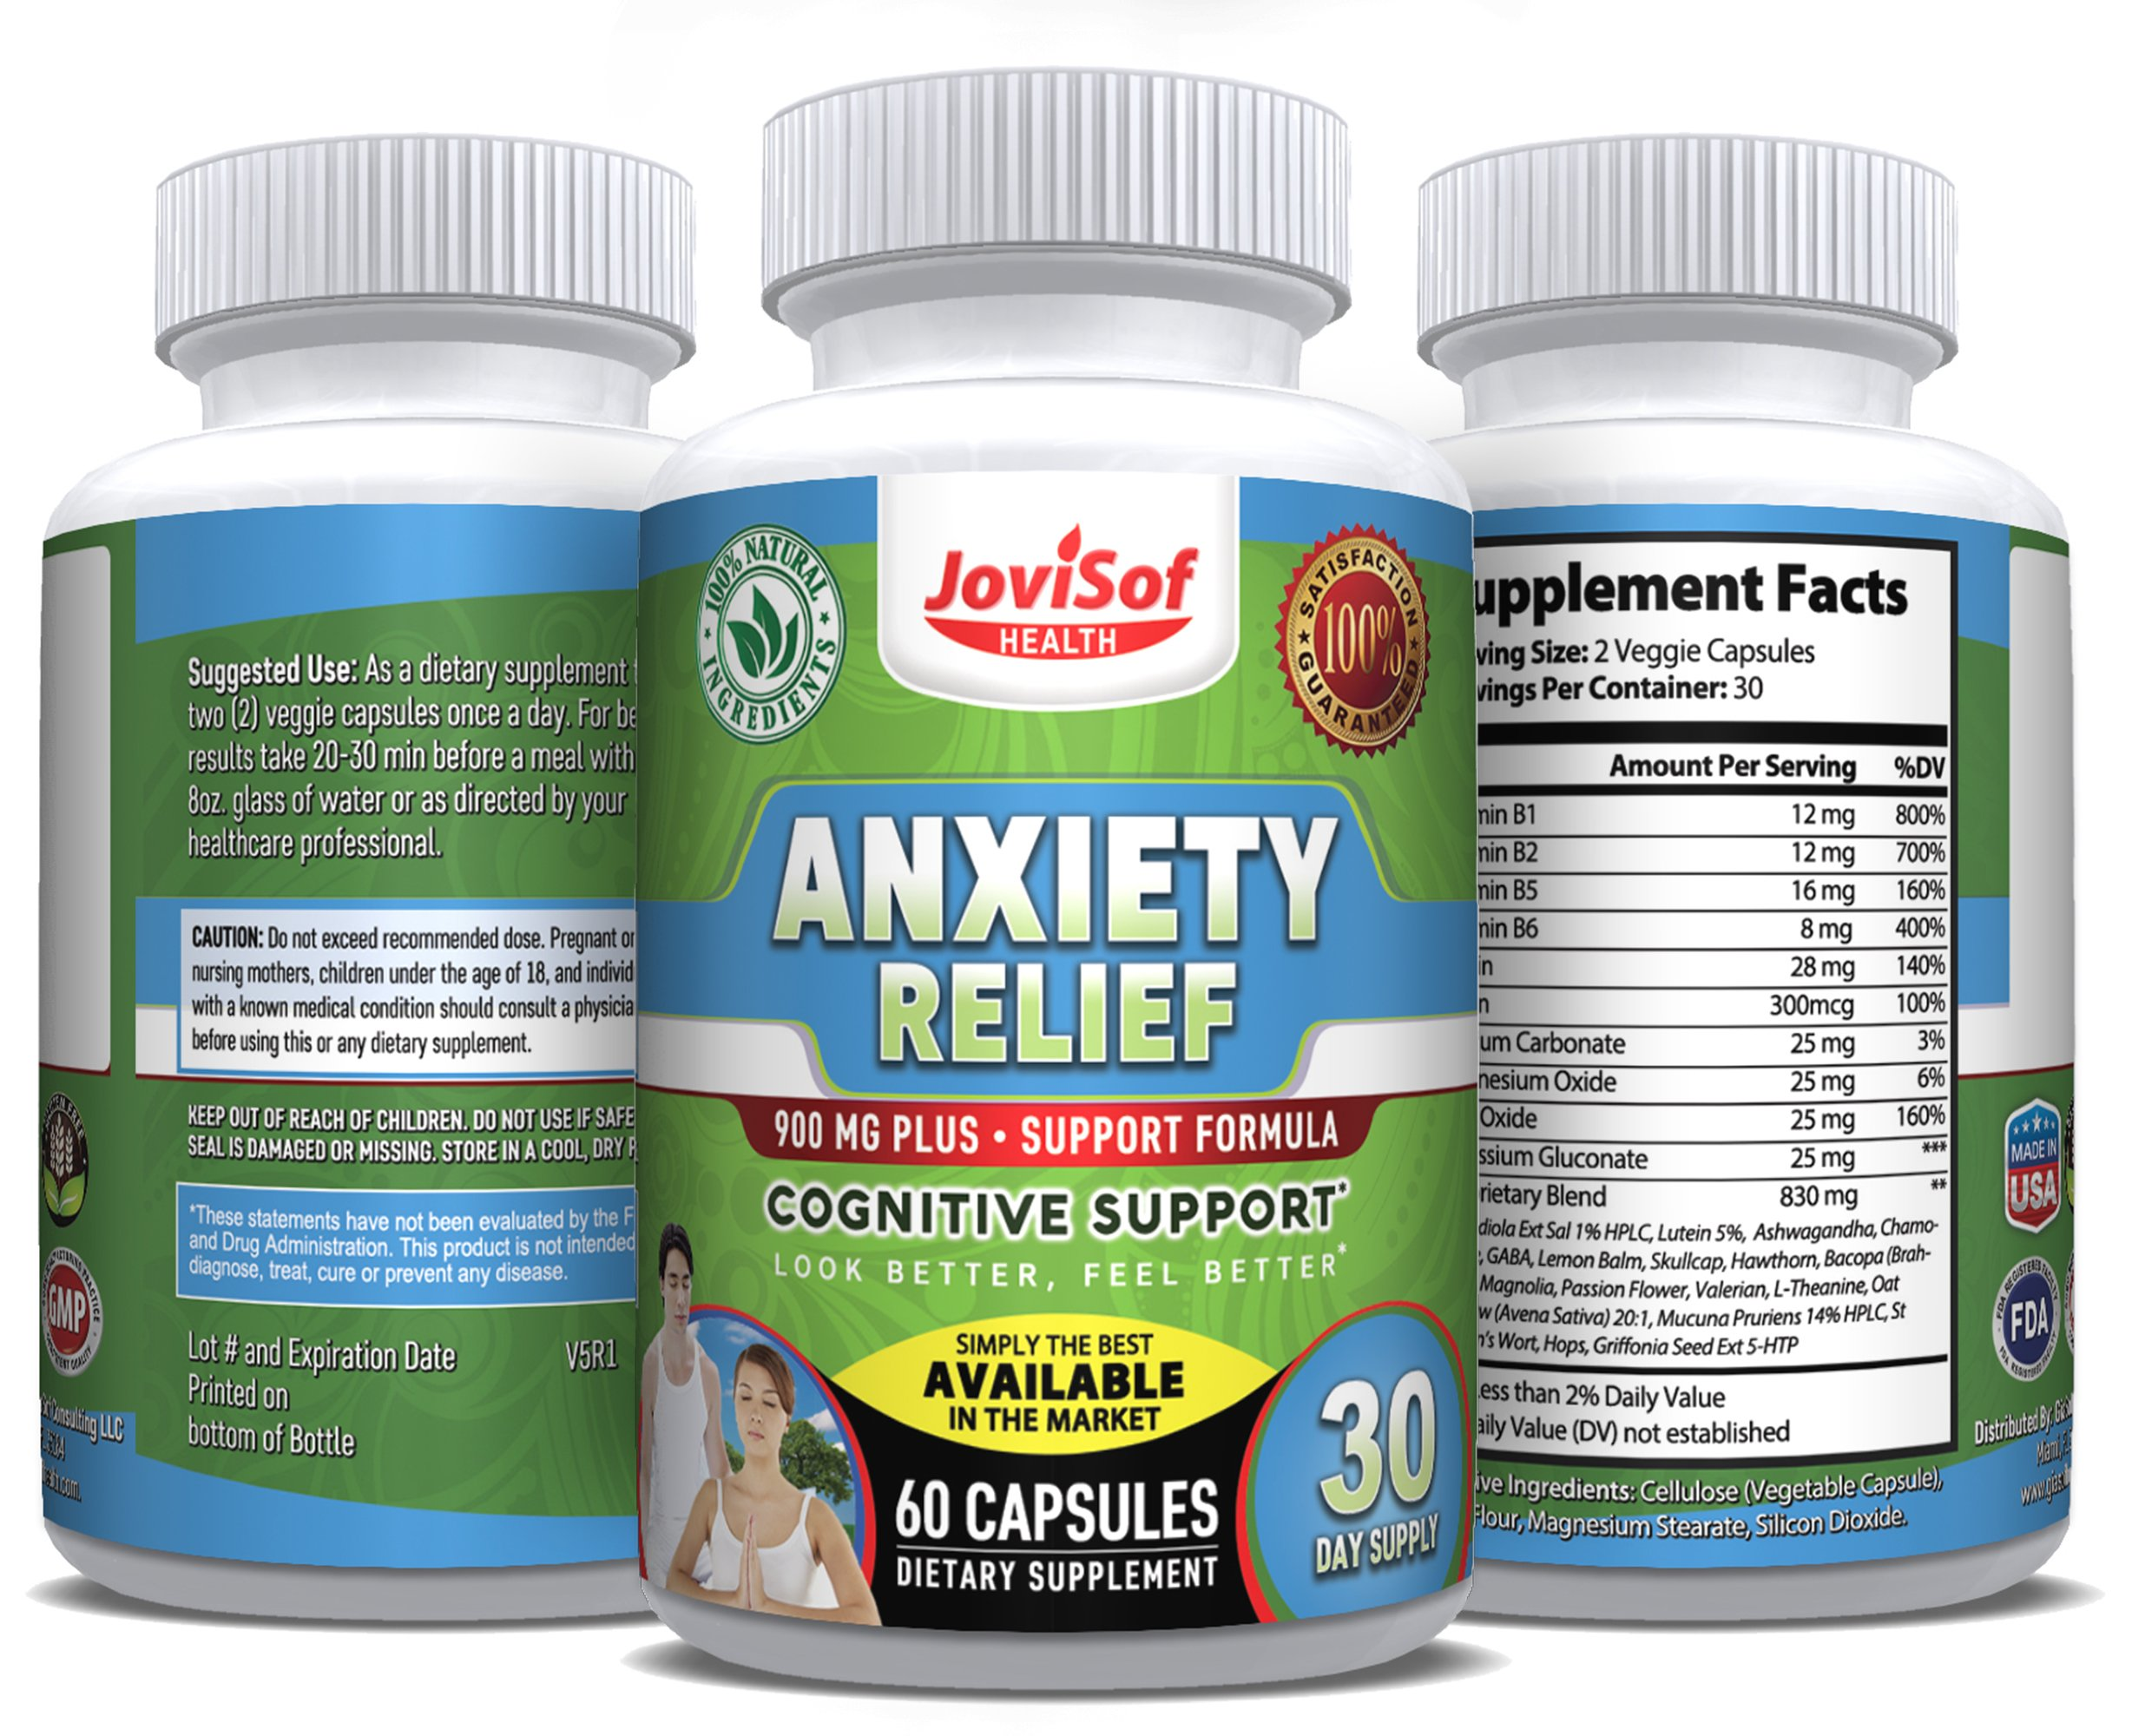 Mood Booster + Non-GMO Supplements for Stress and Anxiety Relief w/5-HTP, Ashwagandha and Artichoke, Serotonin Booster, Soothing Stress Support, All Natural Anti-Anxiety Pills   60 Count